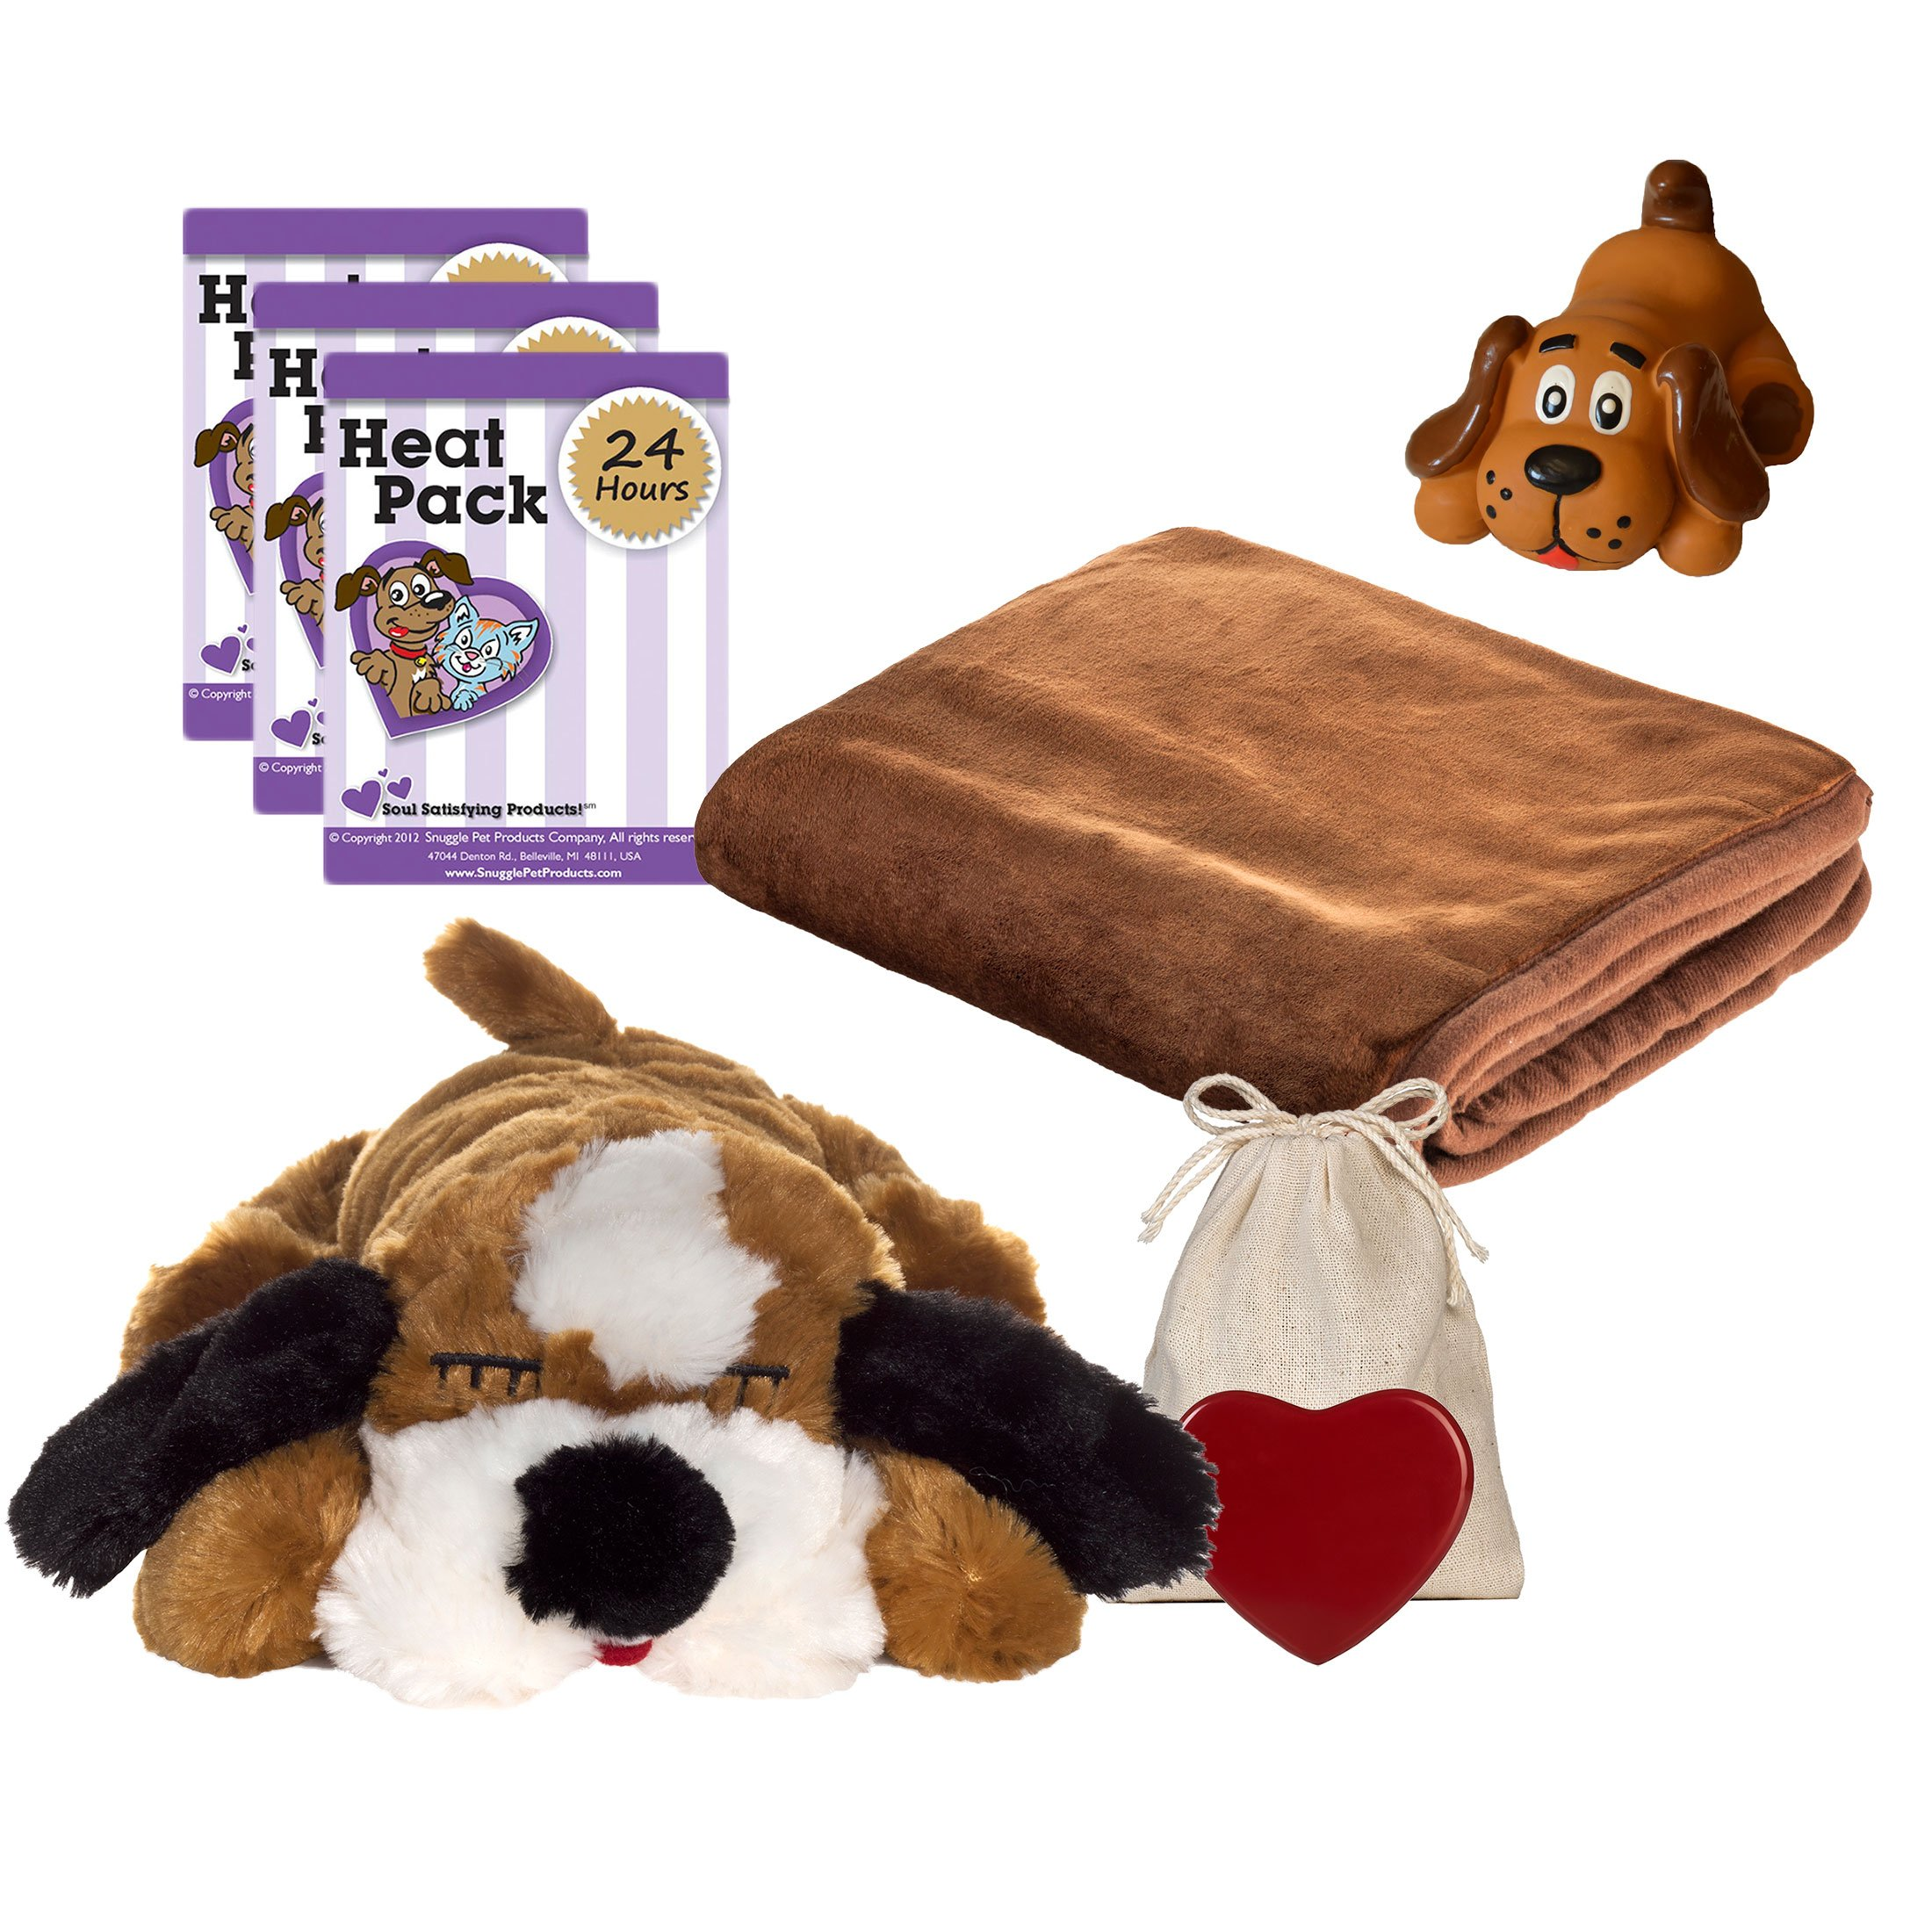 Snuggle Pet Products Snuggle Puppies Starter Kit for Pets, Brown and White